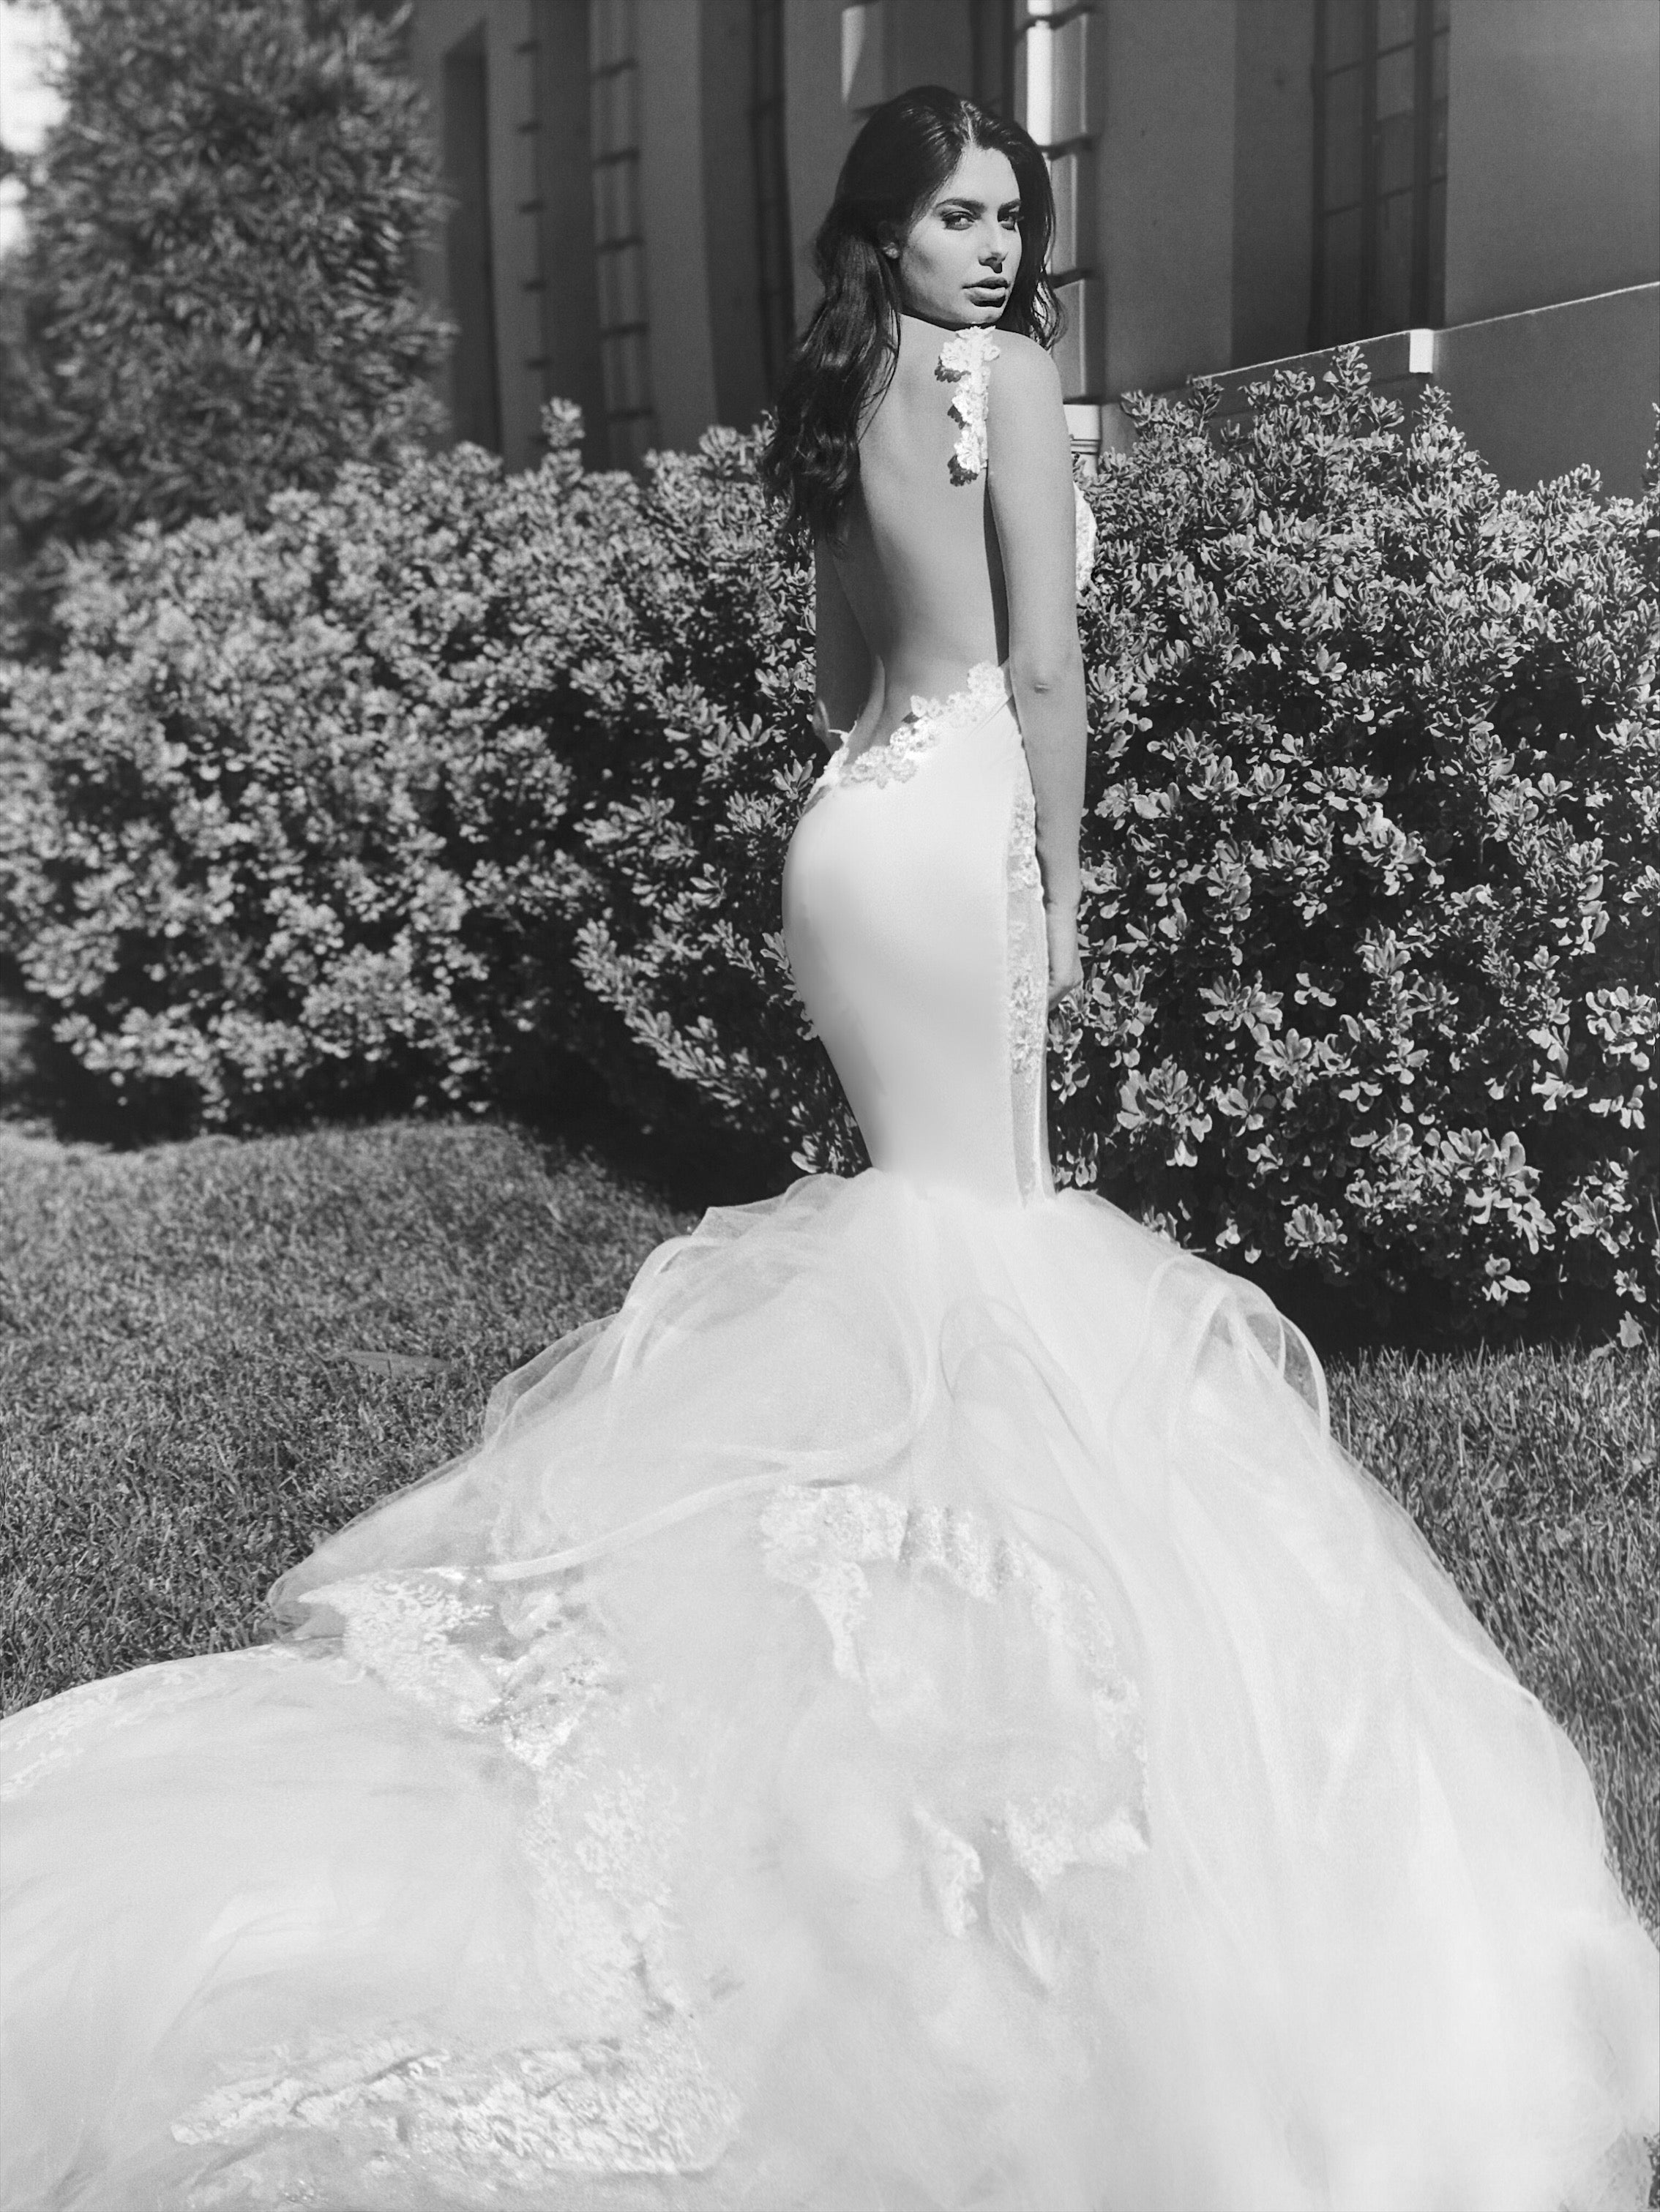 Backless tulle and satin mermaid wedding dresses by Lauren Elaine Bridal of Los Angeles